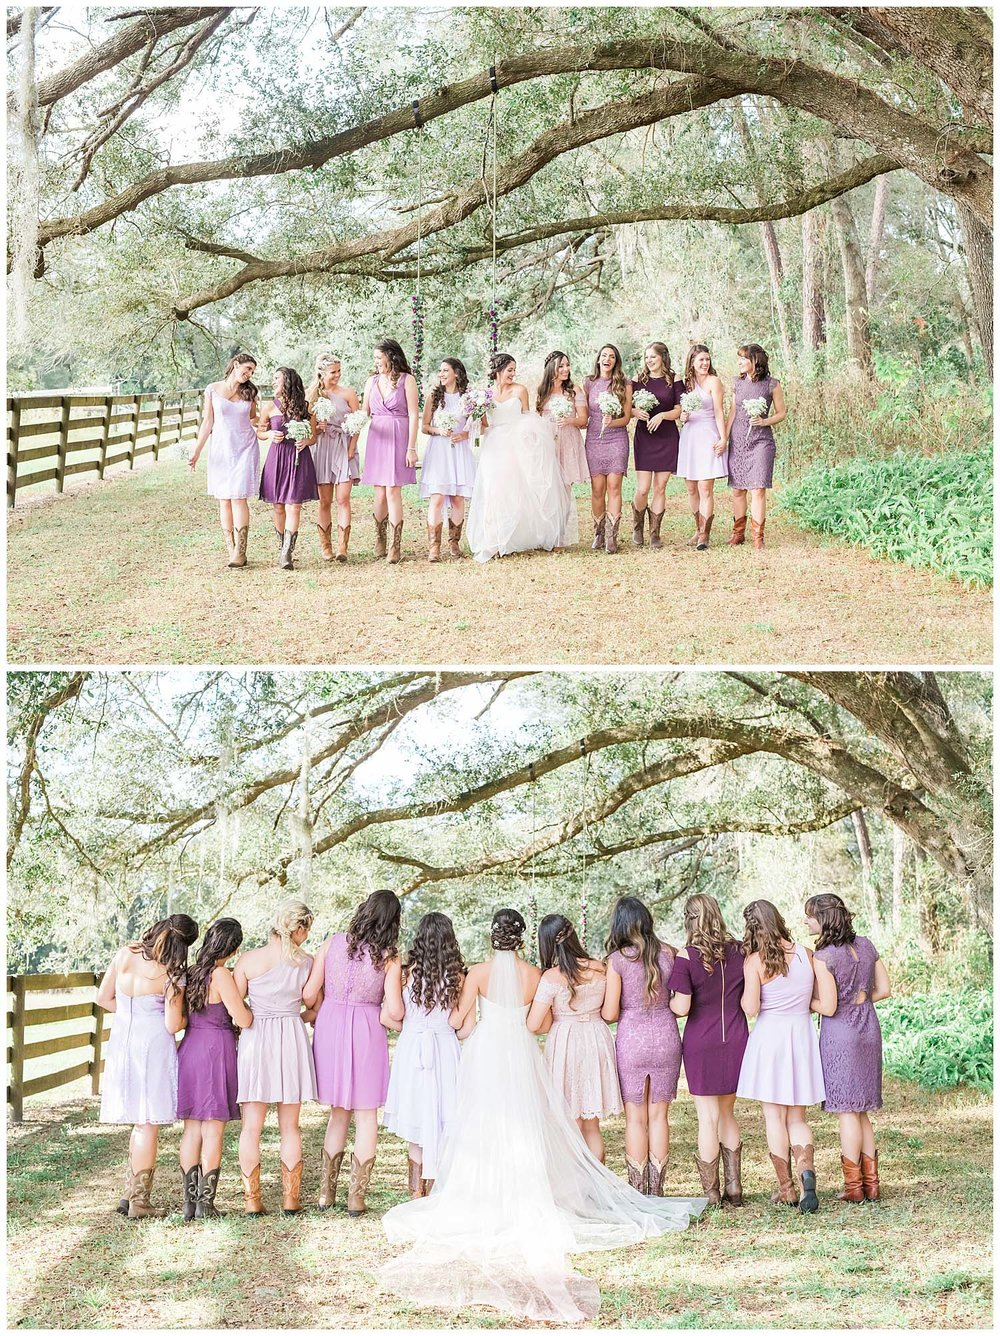 ocala-gainseville-wedding-little-forrest-farm-photographer-candid-lifestyle-gainseville-florida-photography-natural-rustic-bride-groom-purple-silver_0190.jpg